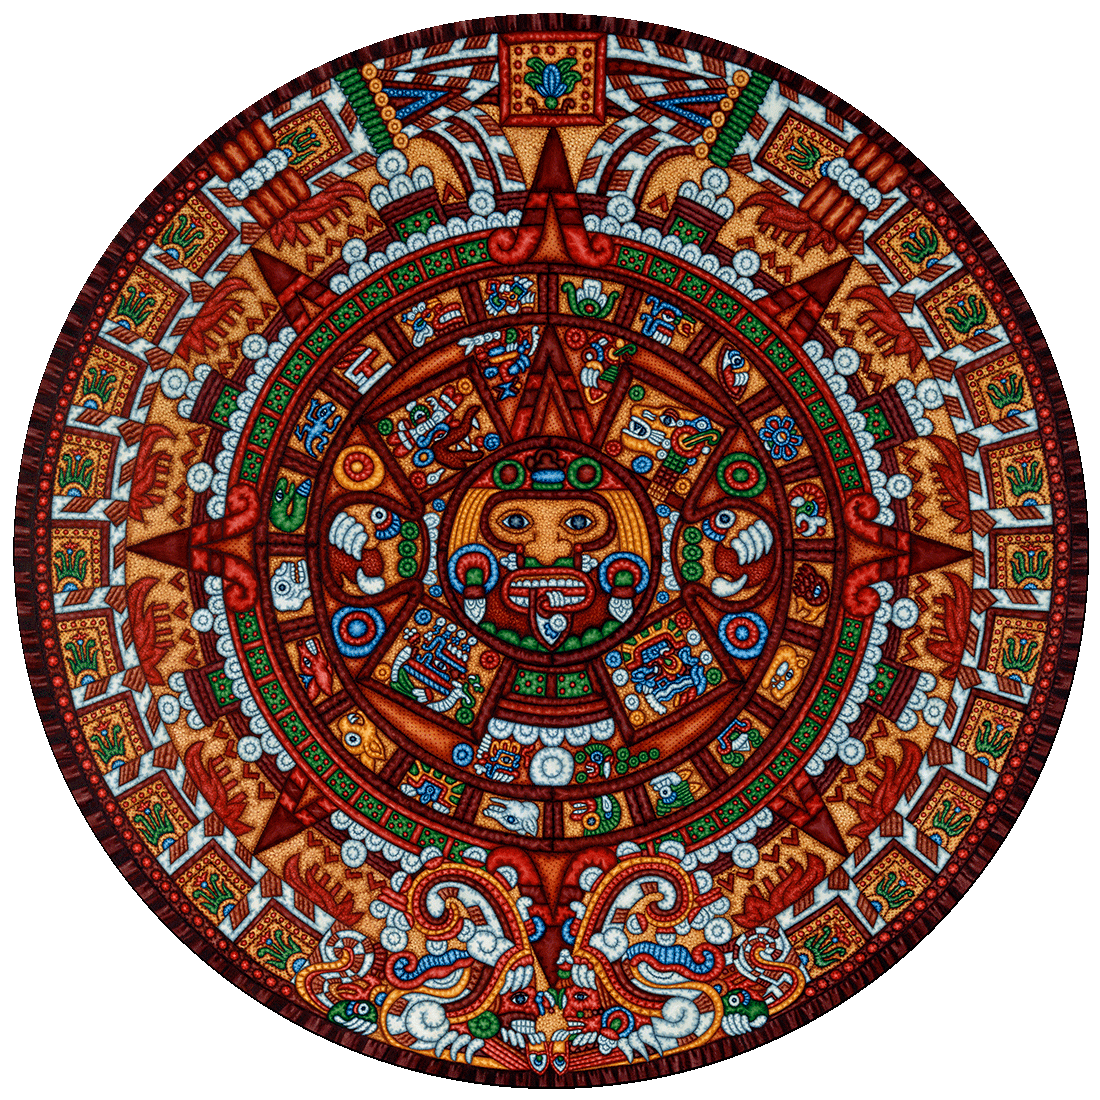 Aztec Calendar Wallpaper Backgrounds : Aztec calendar wallpapers wallpaper cave